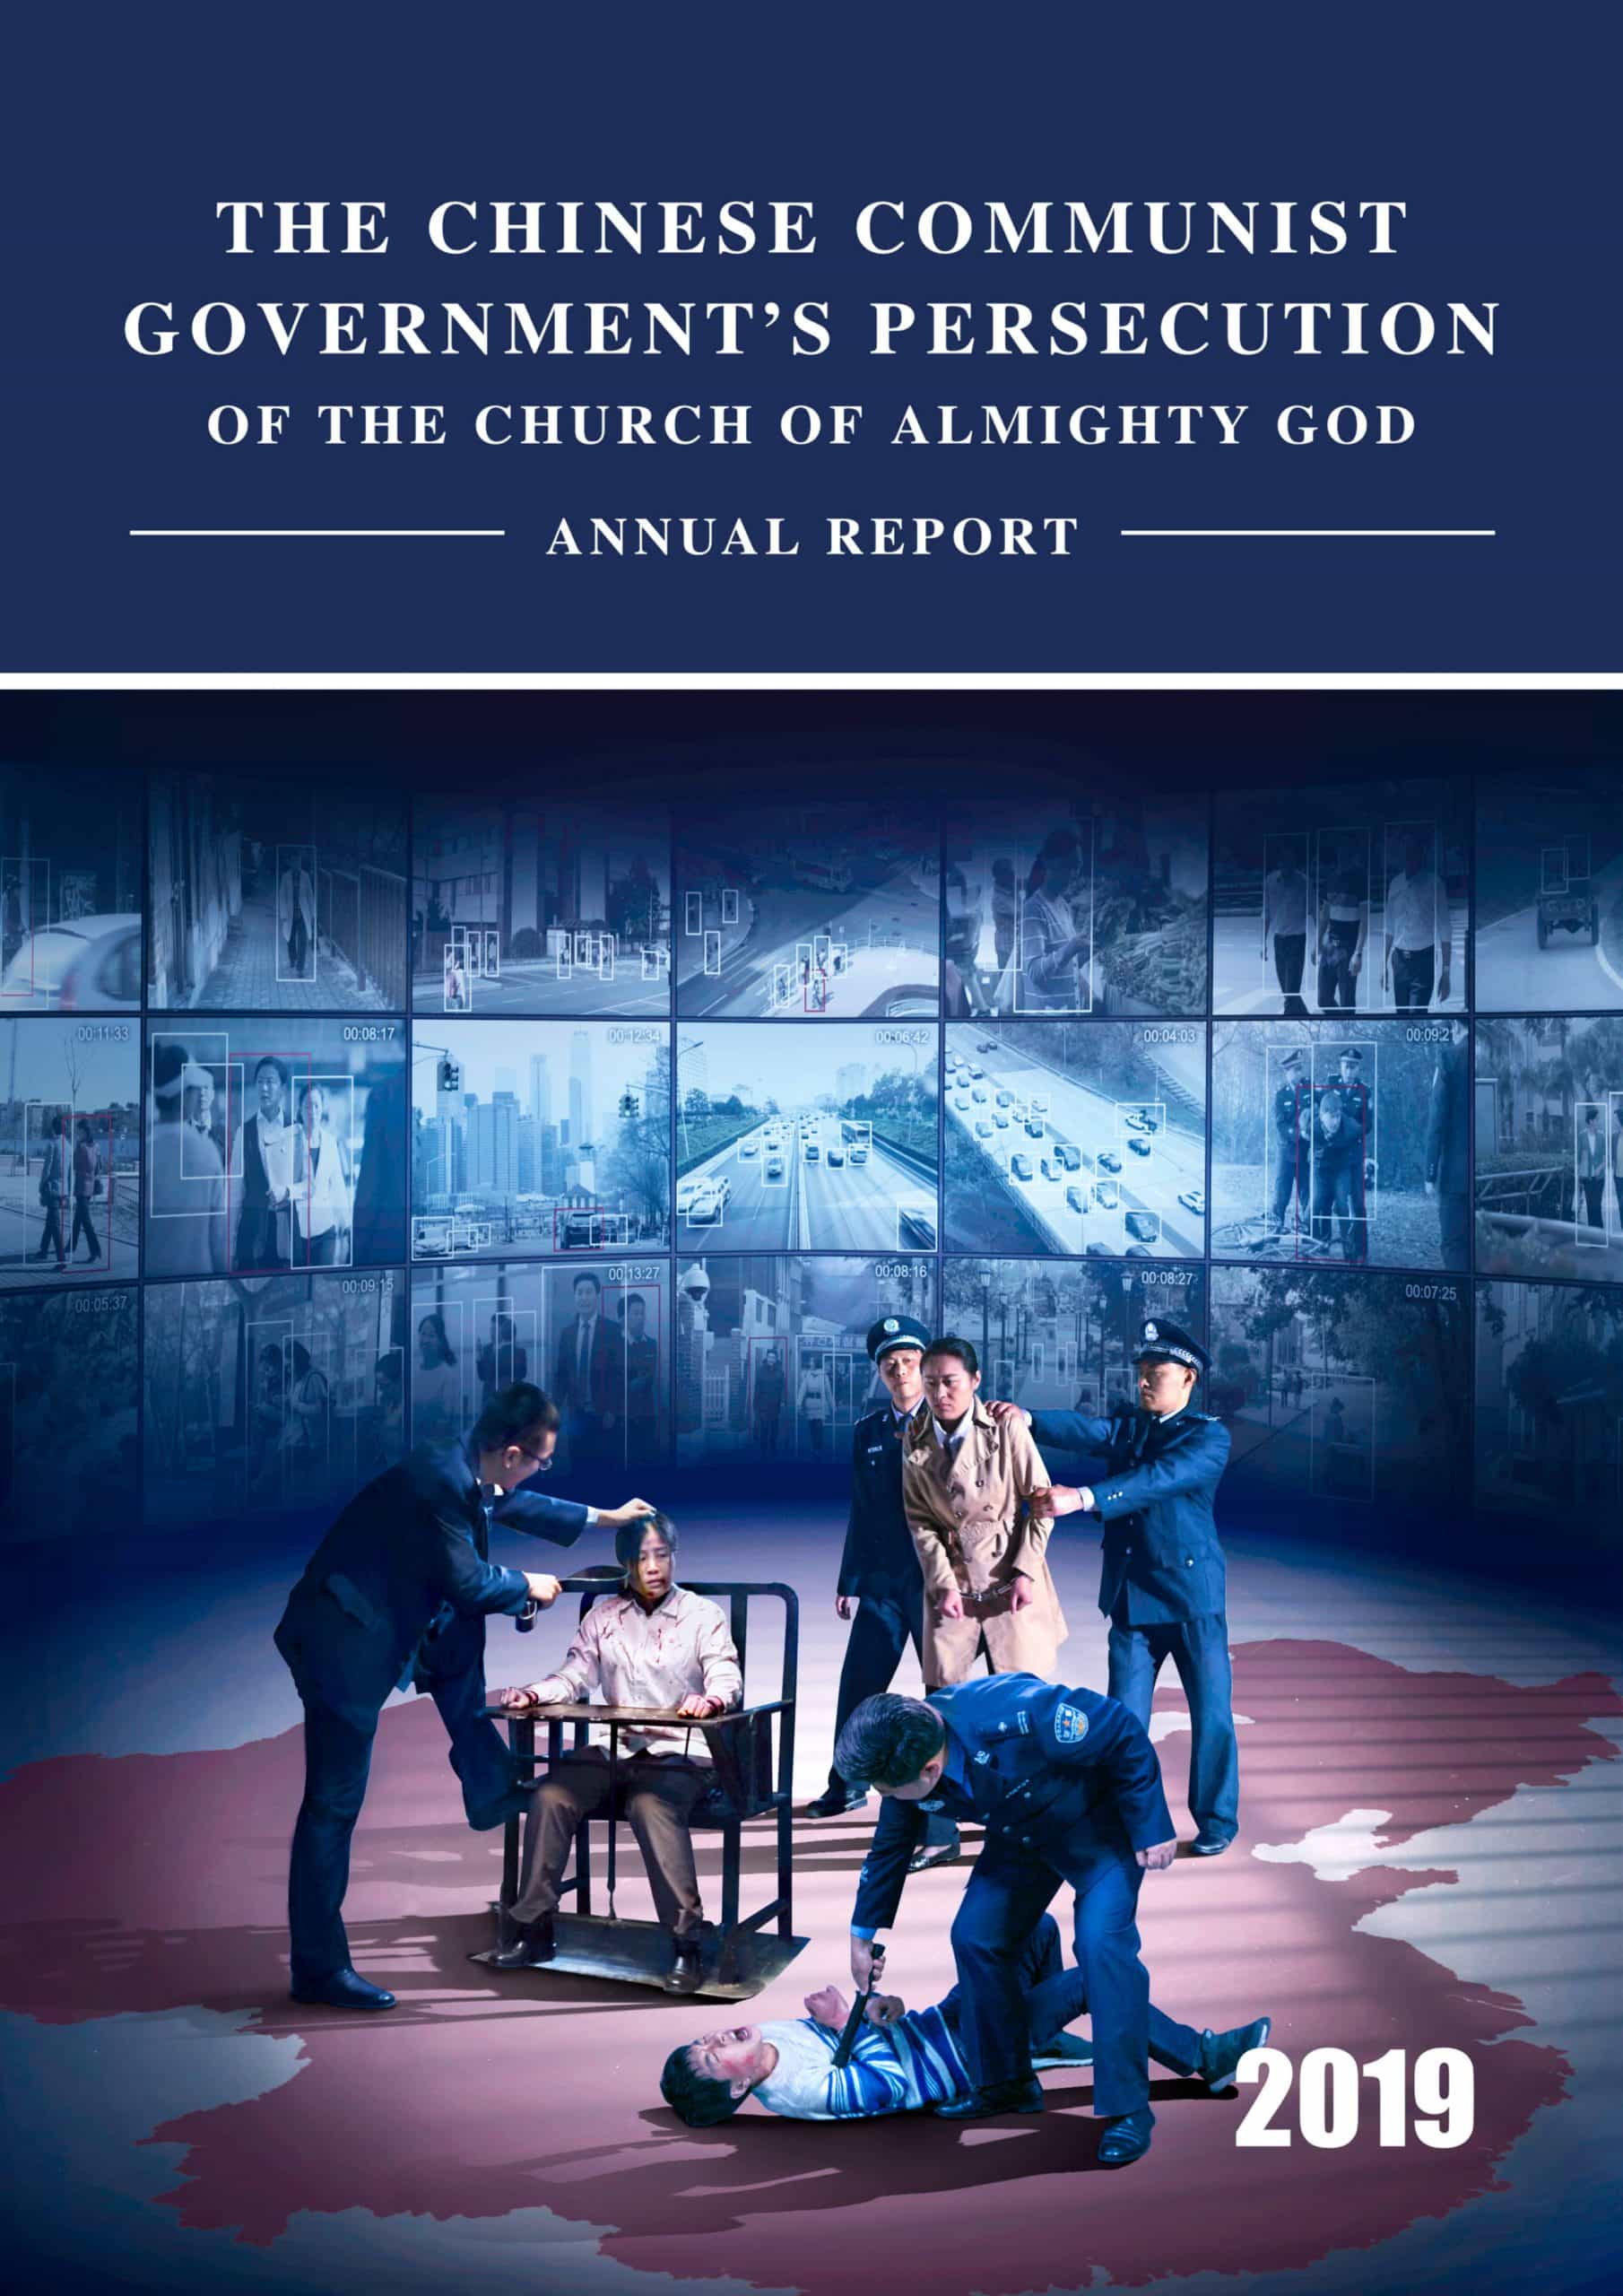 The Chinese communist government's persecution of the Church of almighty god - 2019 report